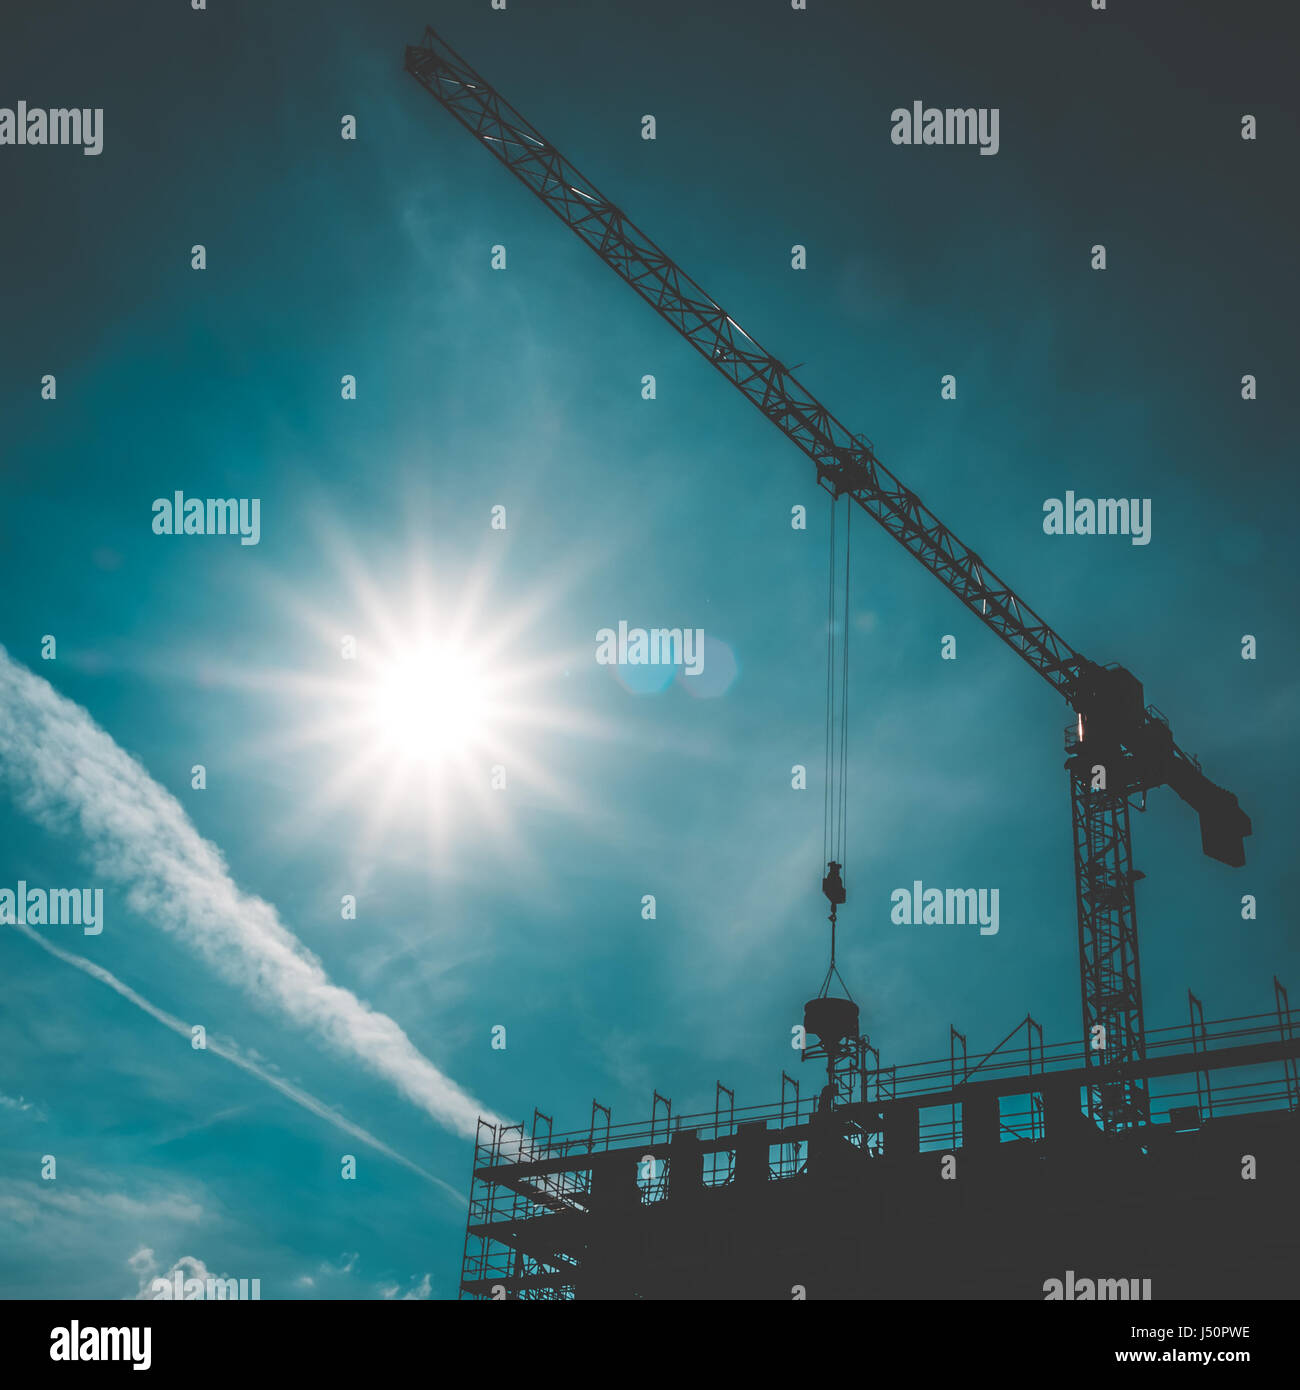 scaffolding and construction cranes silhouette on blue sky - Stock Image